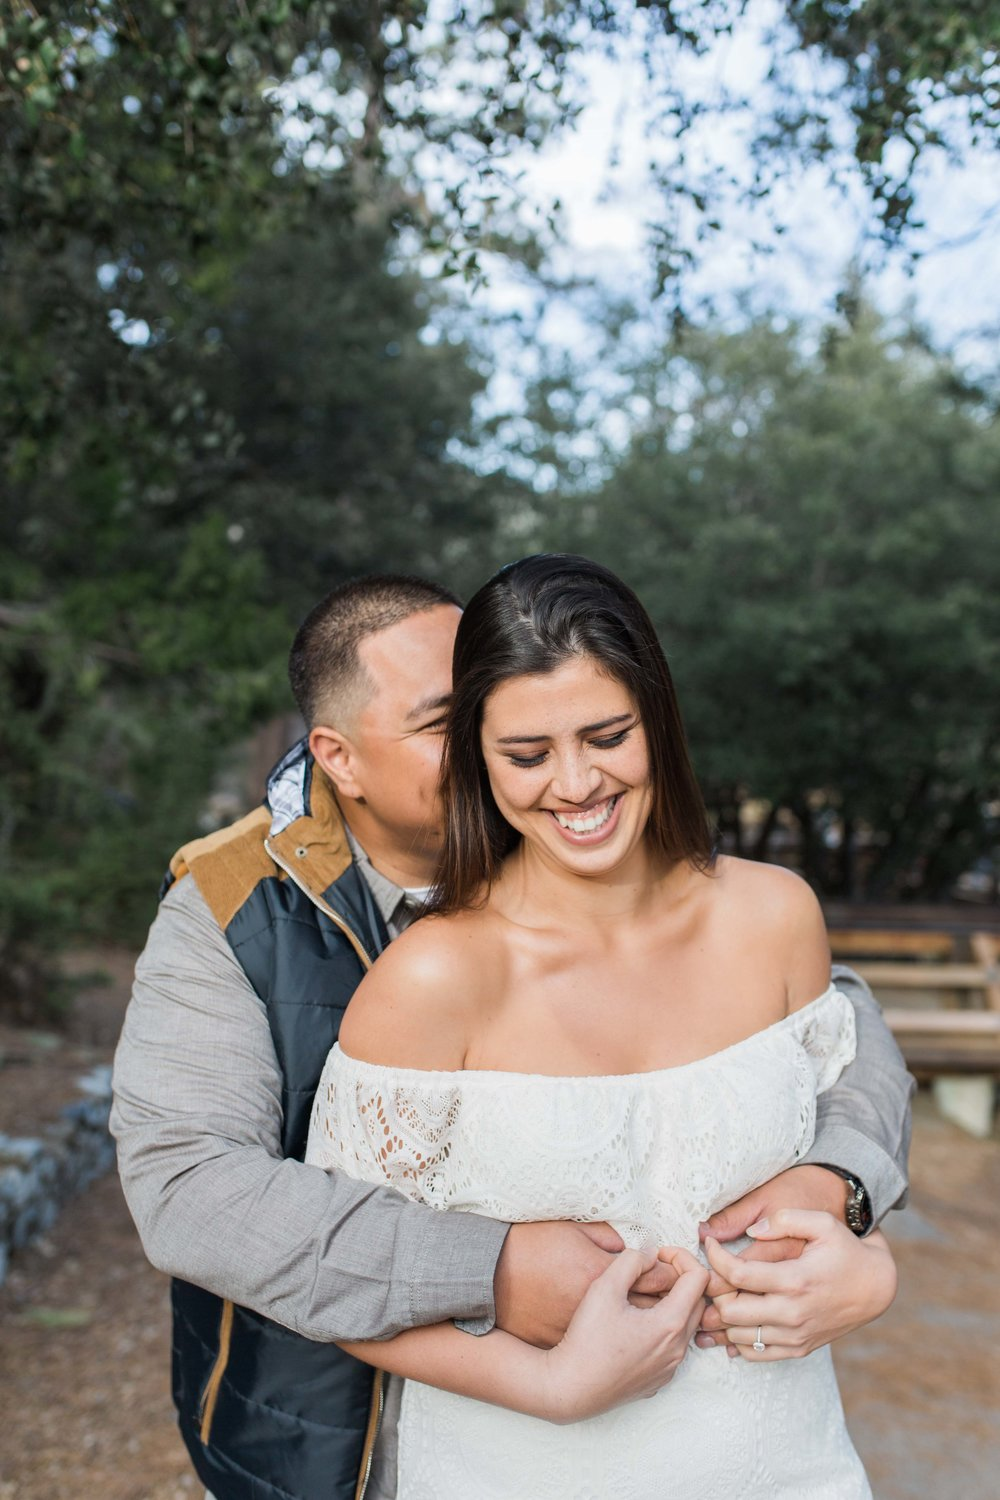 Heather Anderson Photography, idyllwild engagement photographer, orange county wedding photographer